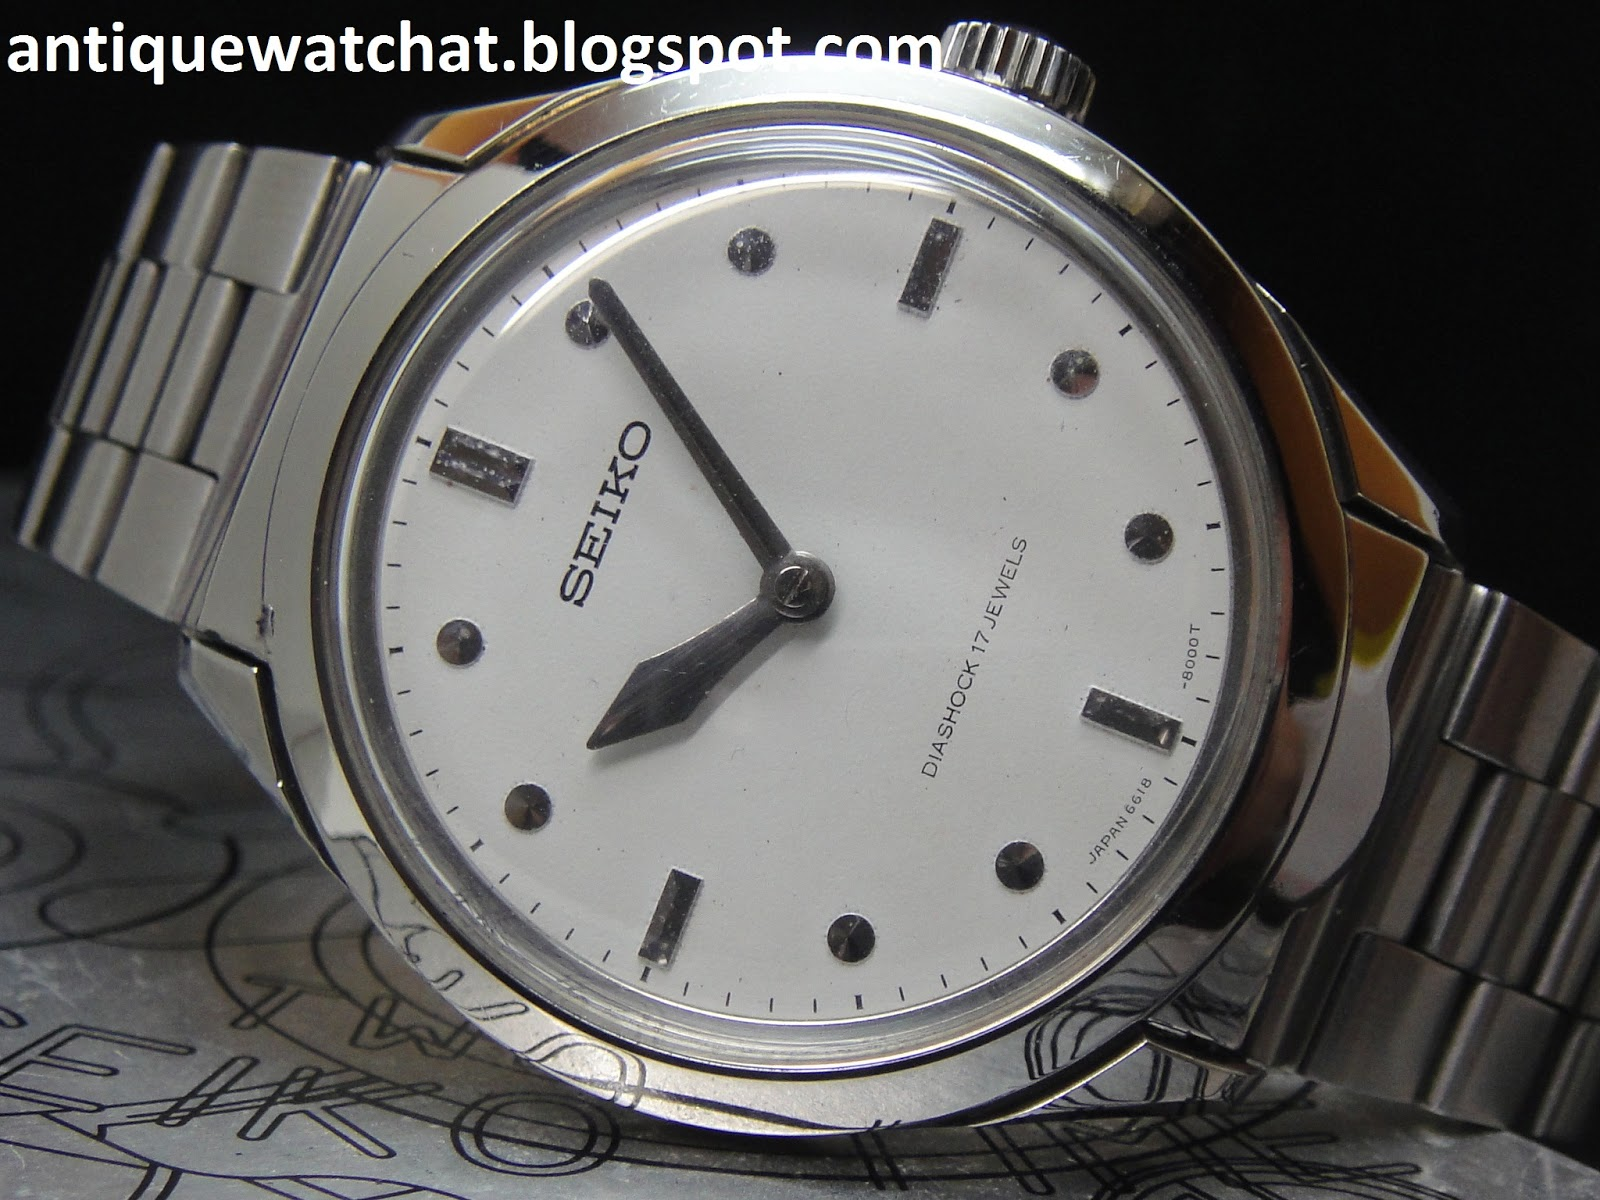 blinds qnet launches chairos luxury watches new for blind